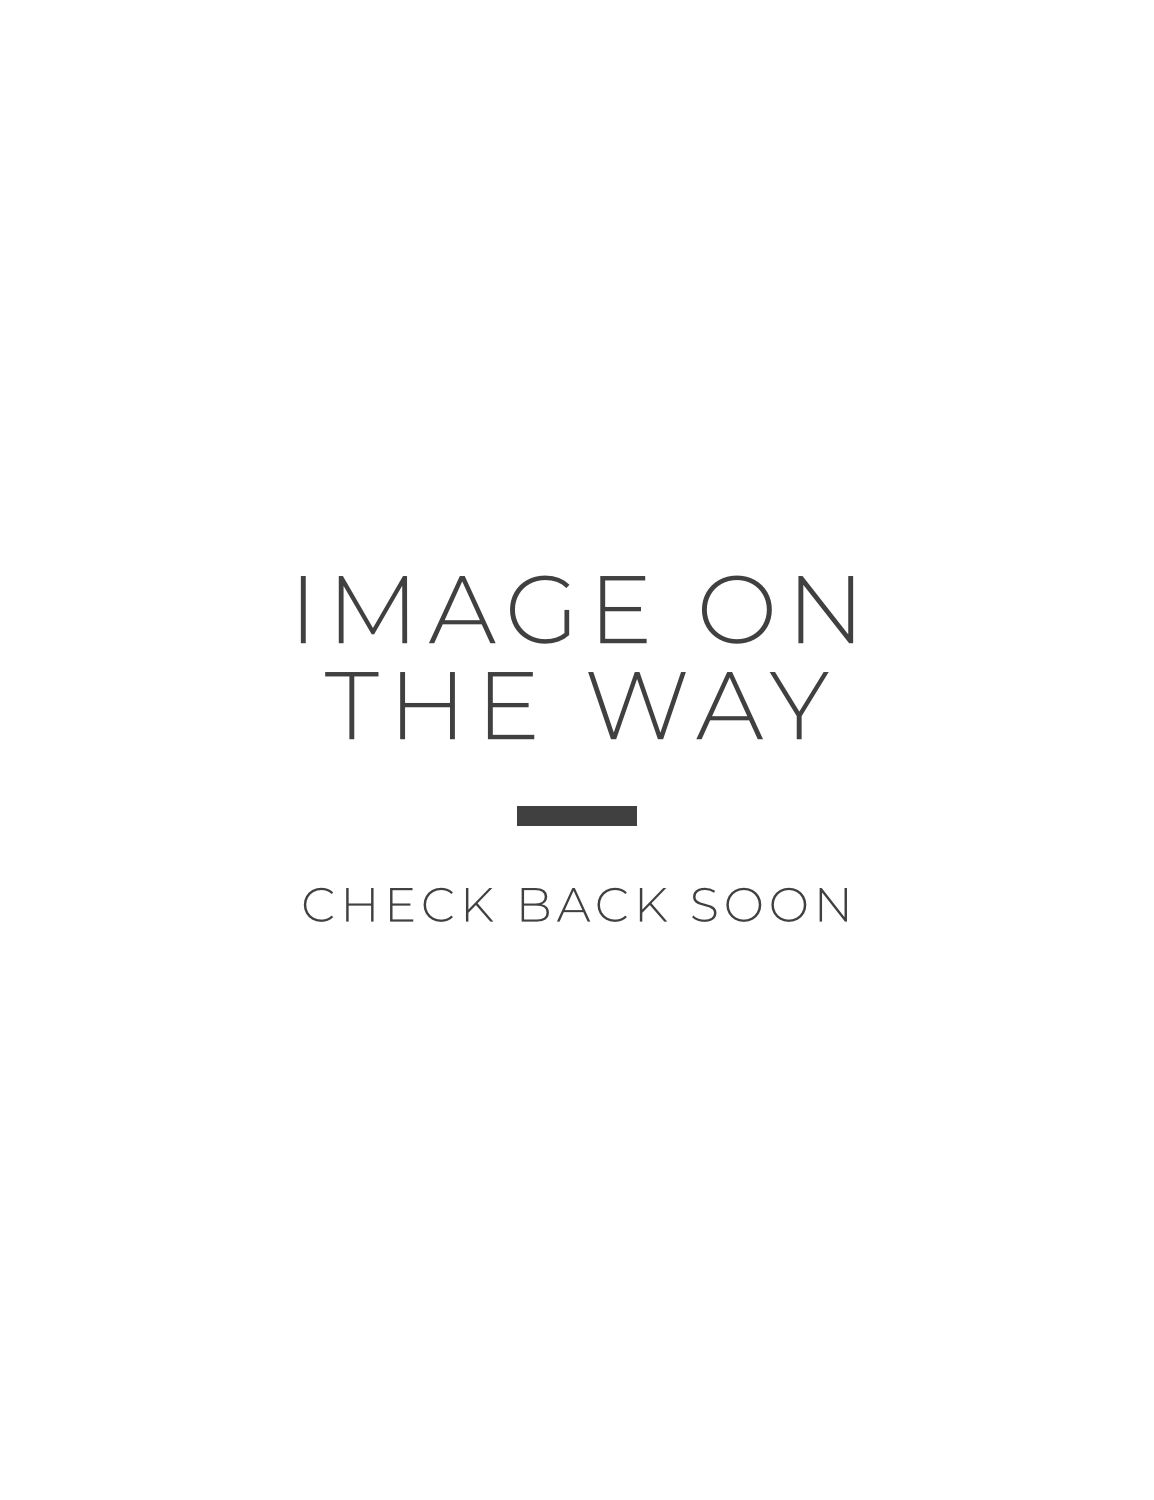 Lane Bryant Womens Invisible Backsmoother Lightly Lined Full Coverage Bra 40DDD Sugar